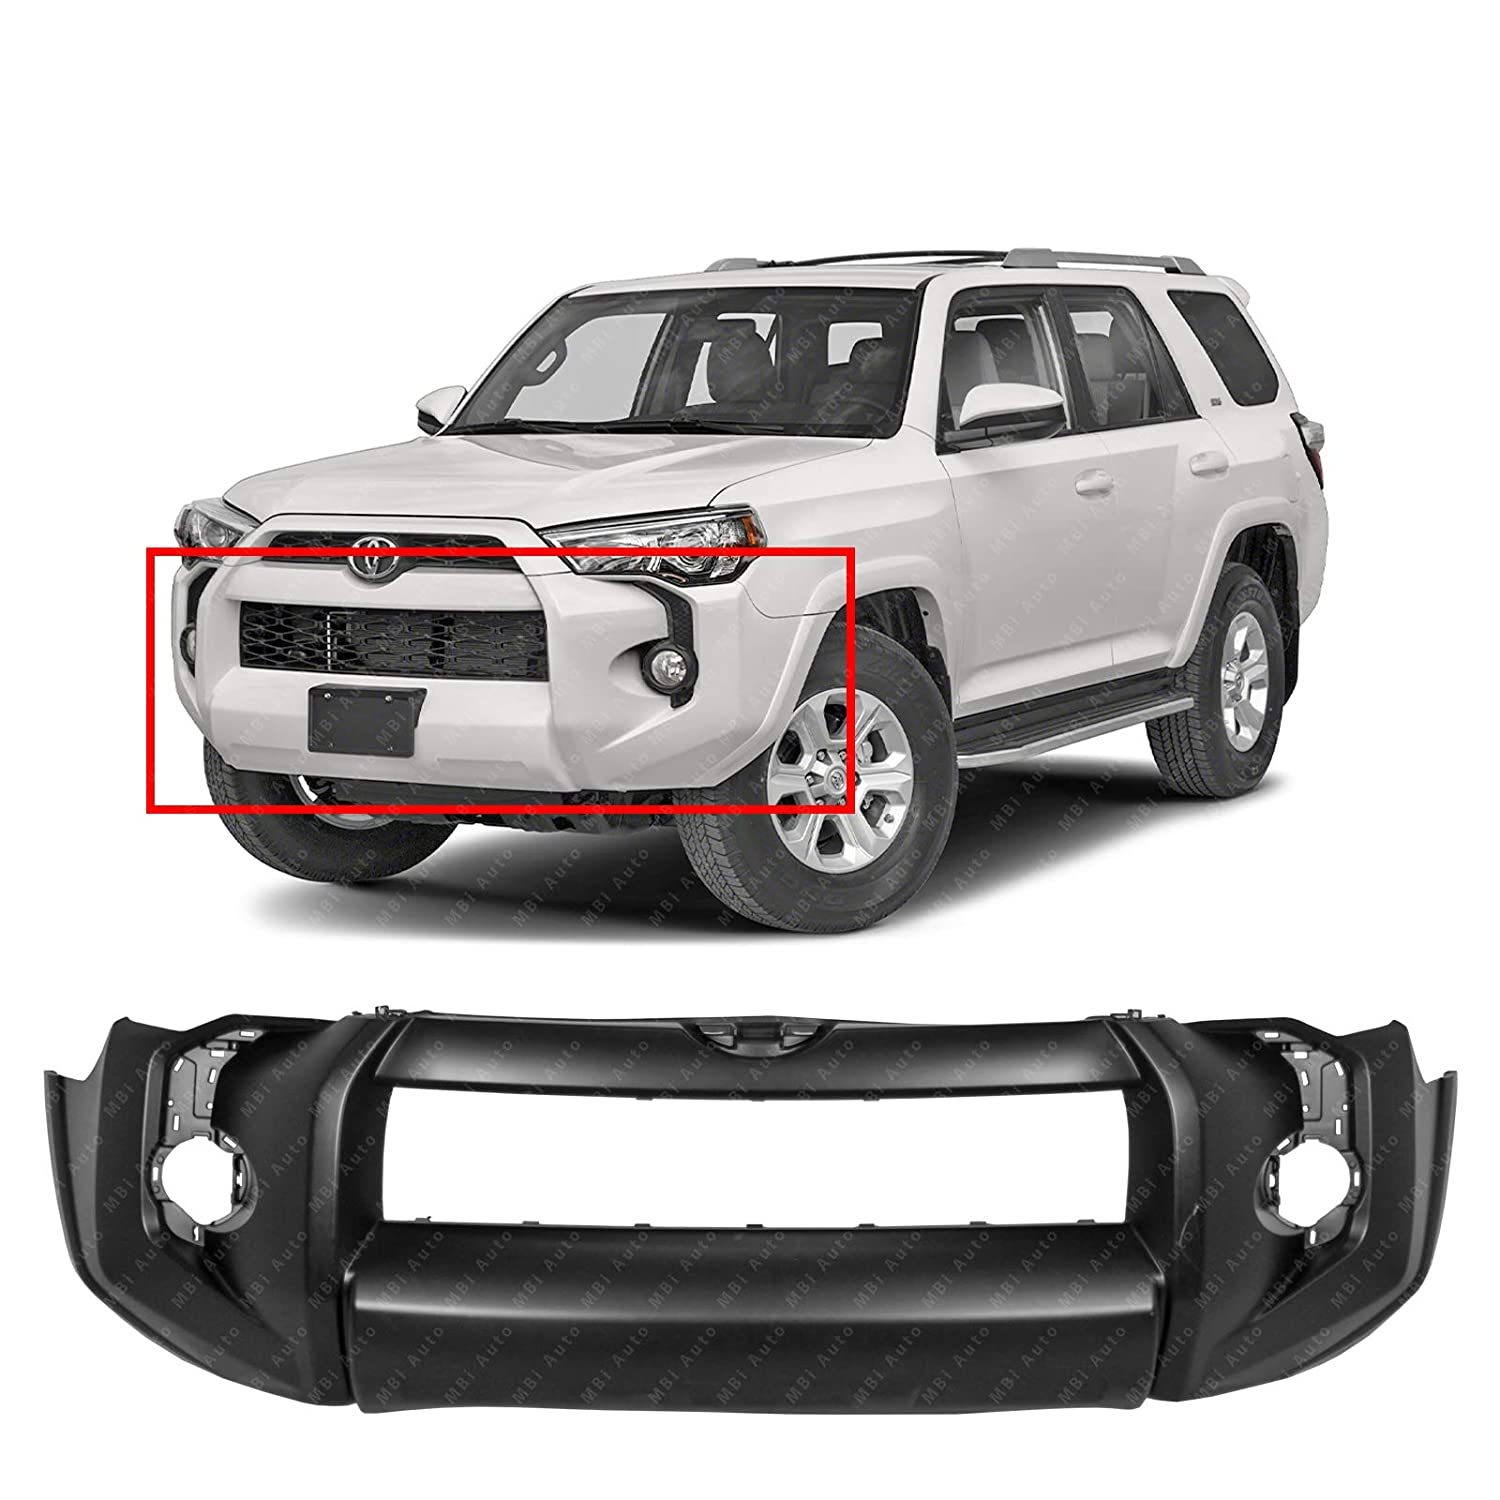 Front Bumper Cover Fascia for 2014-2019 Toyota 4Runner SR5 // Base 14-19 Primered MBI AUTO TO1000405